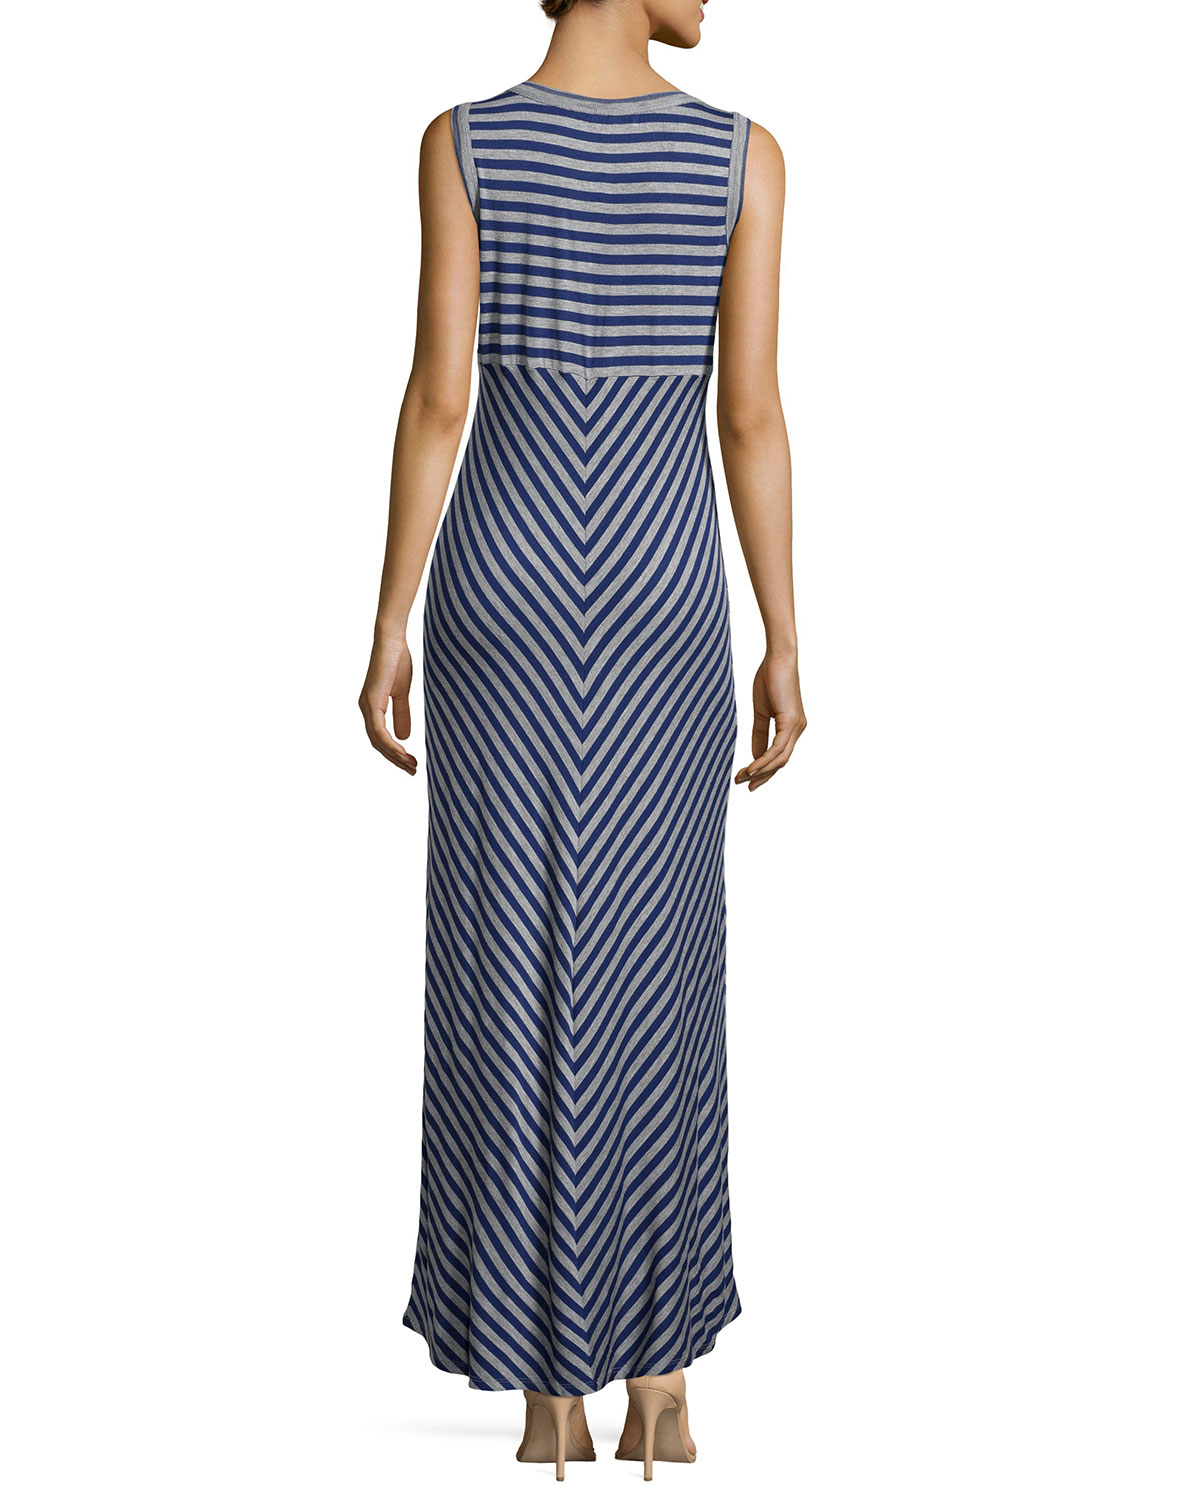 Lyst - Neiman Marcus Stretch-knit Striped Maxi Dress in Blue